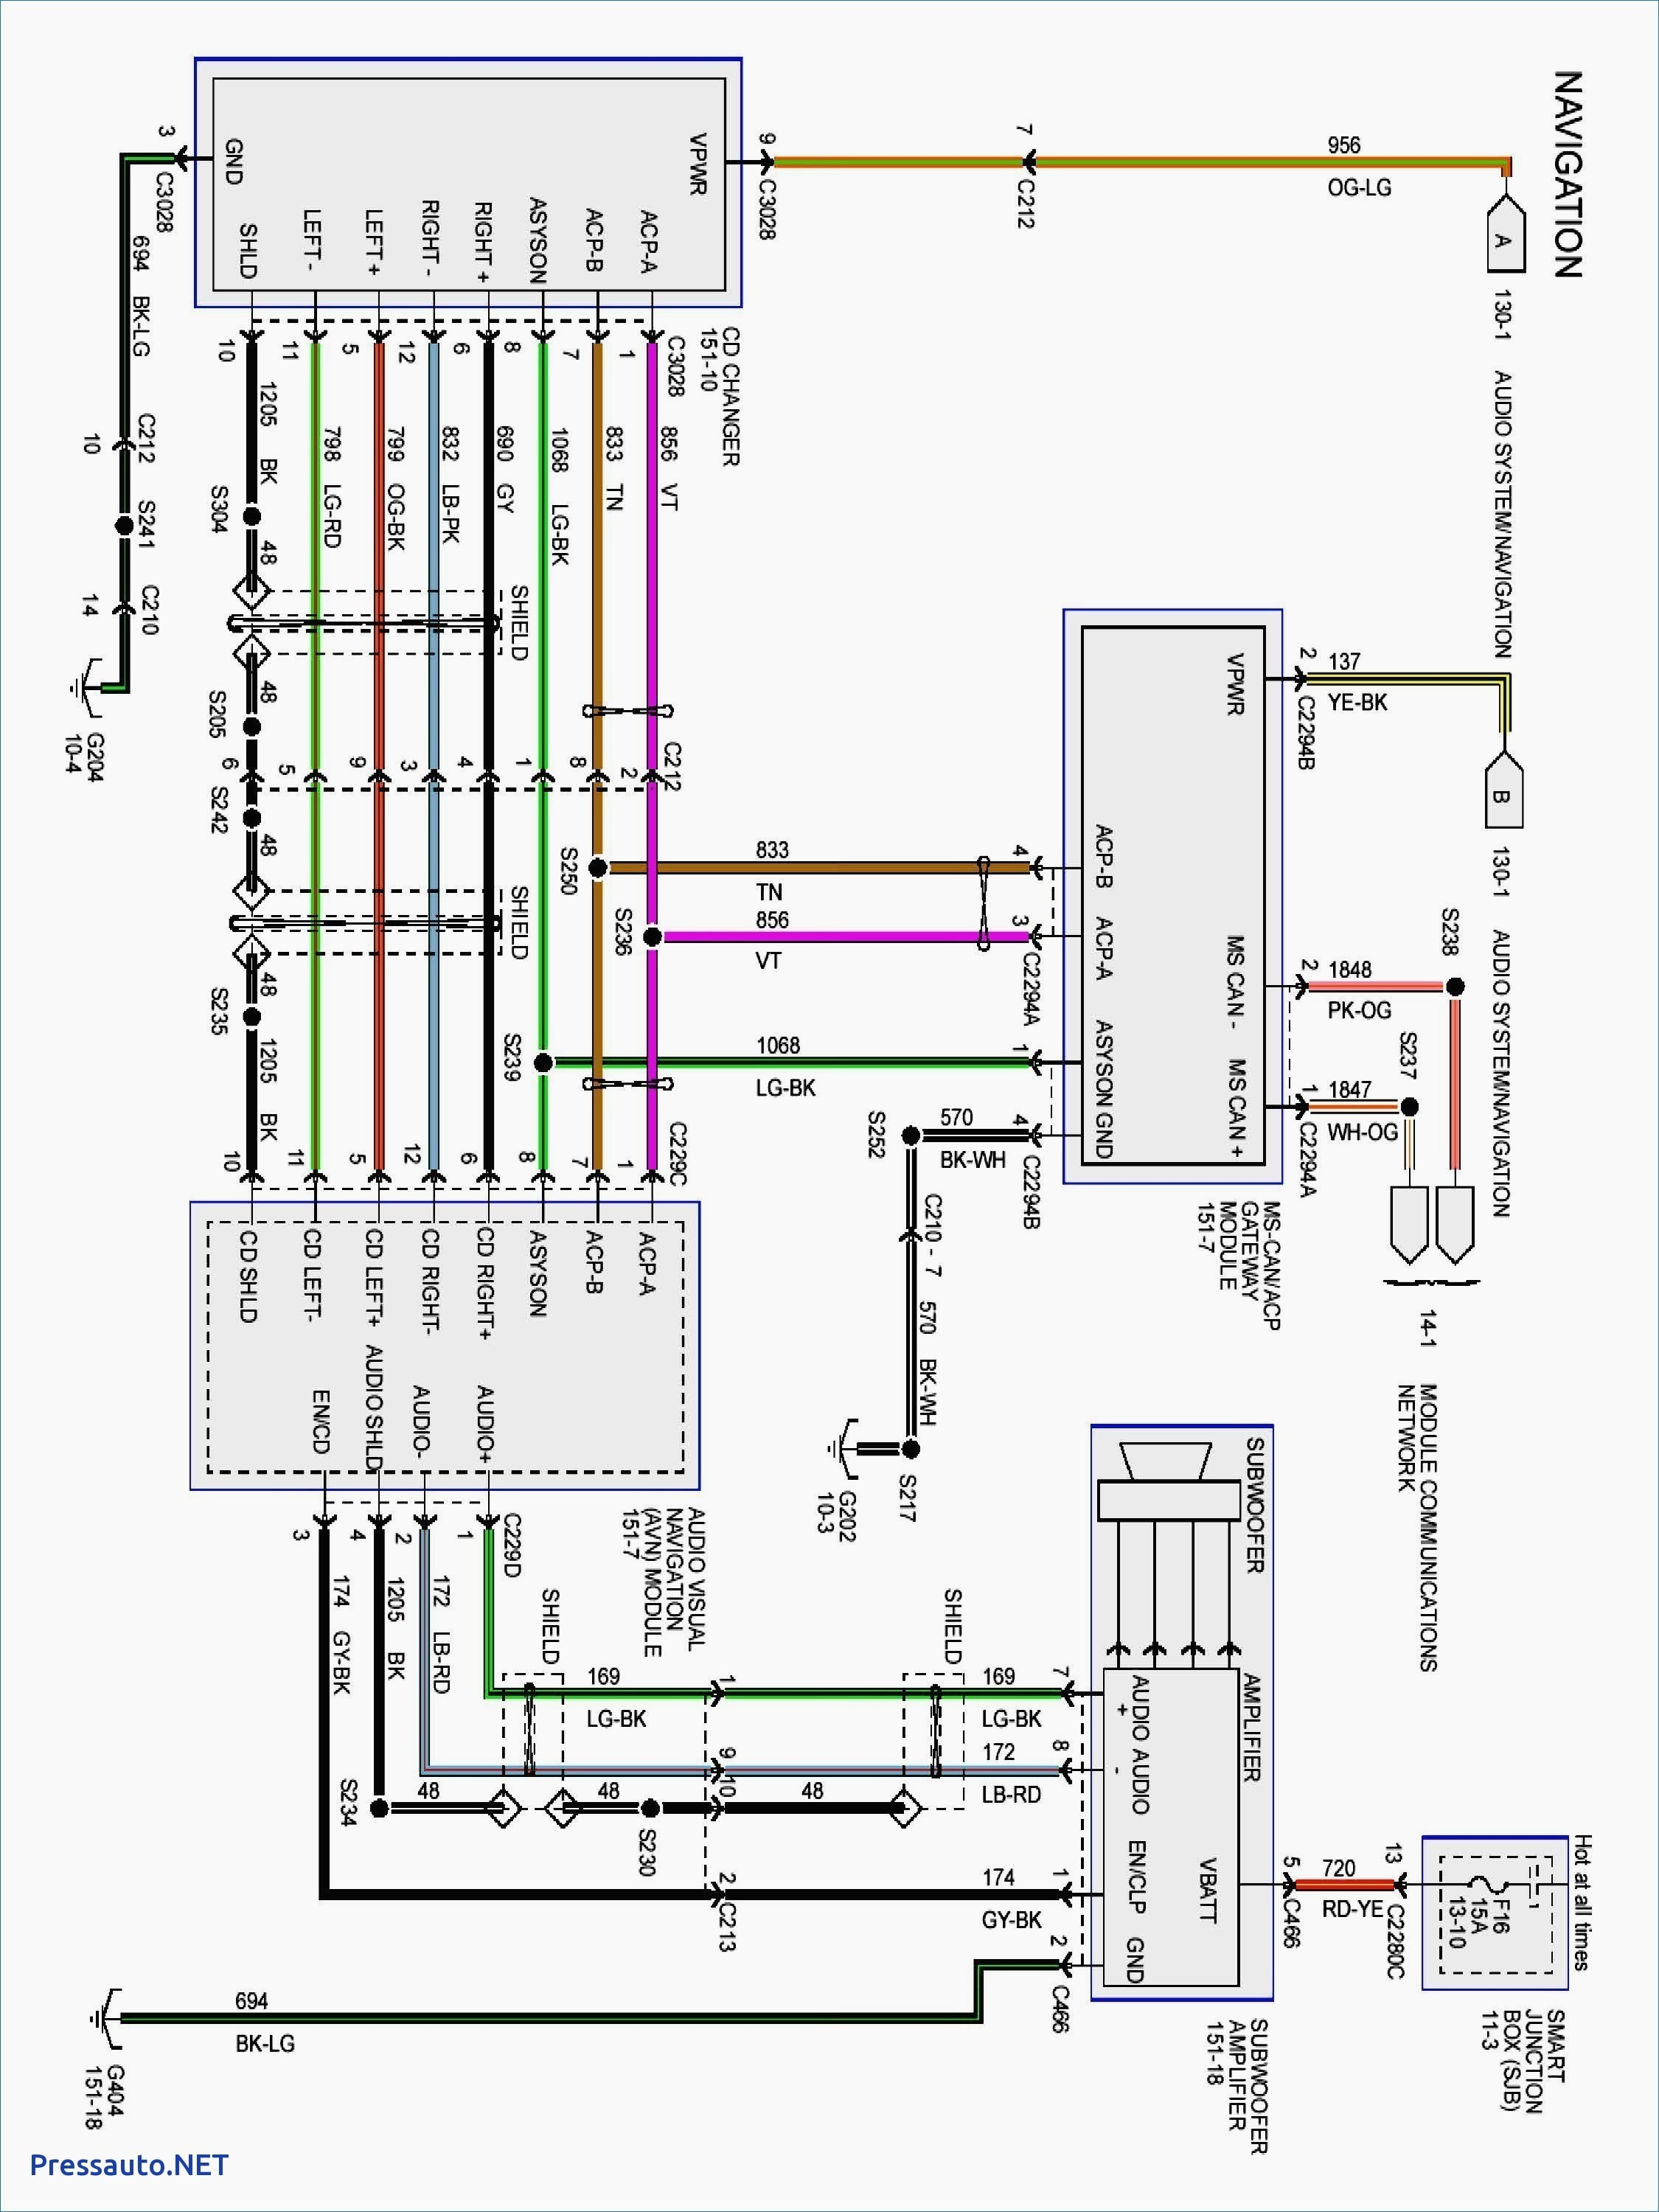 Swell Jvc Kdr330 Wiring Diagram Wiring Diagram Image Wiring Cloud Staixuggs Outletorg